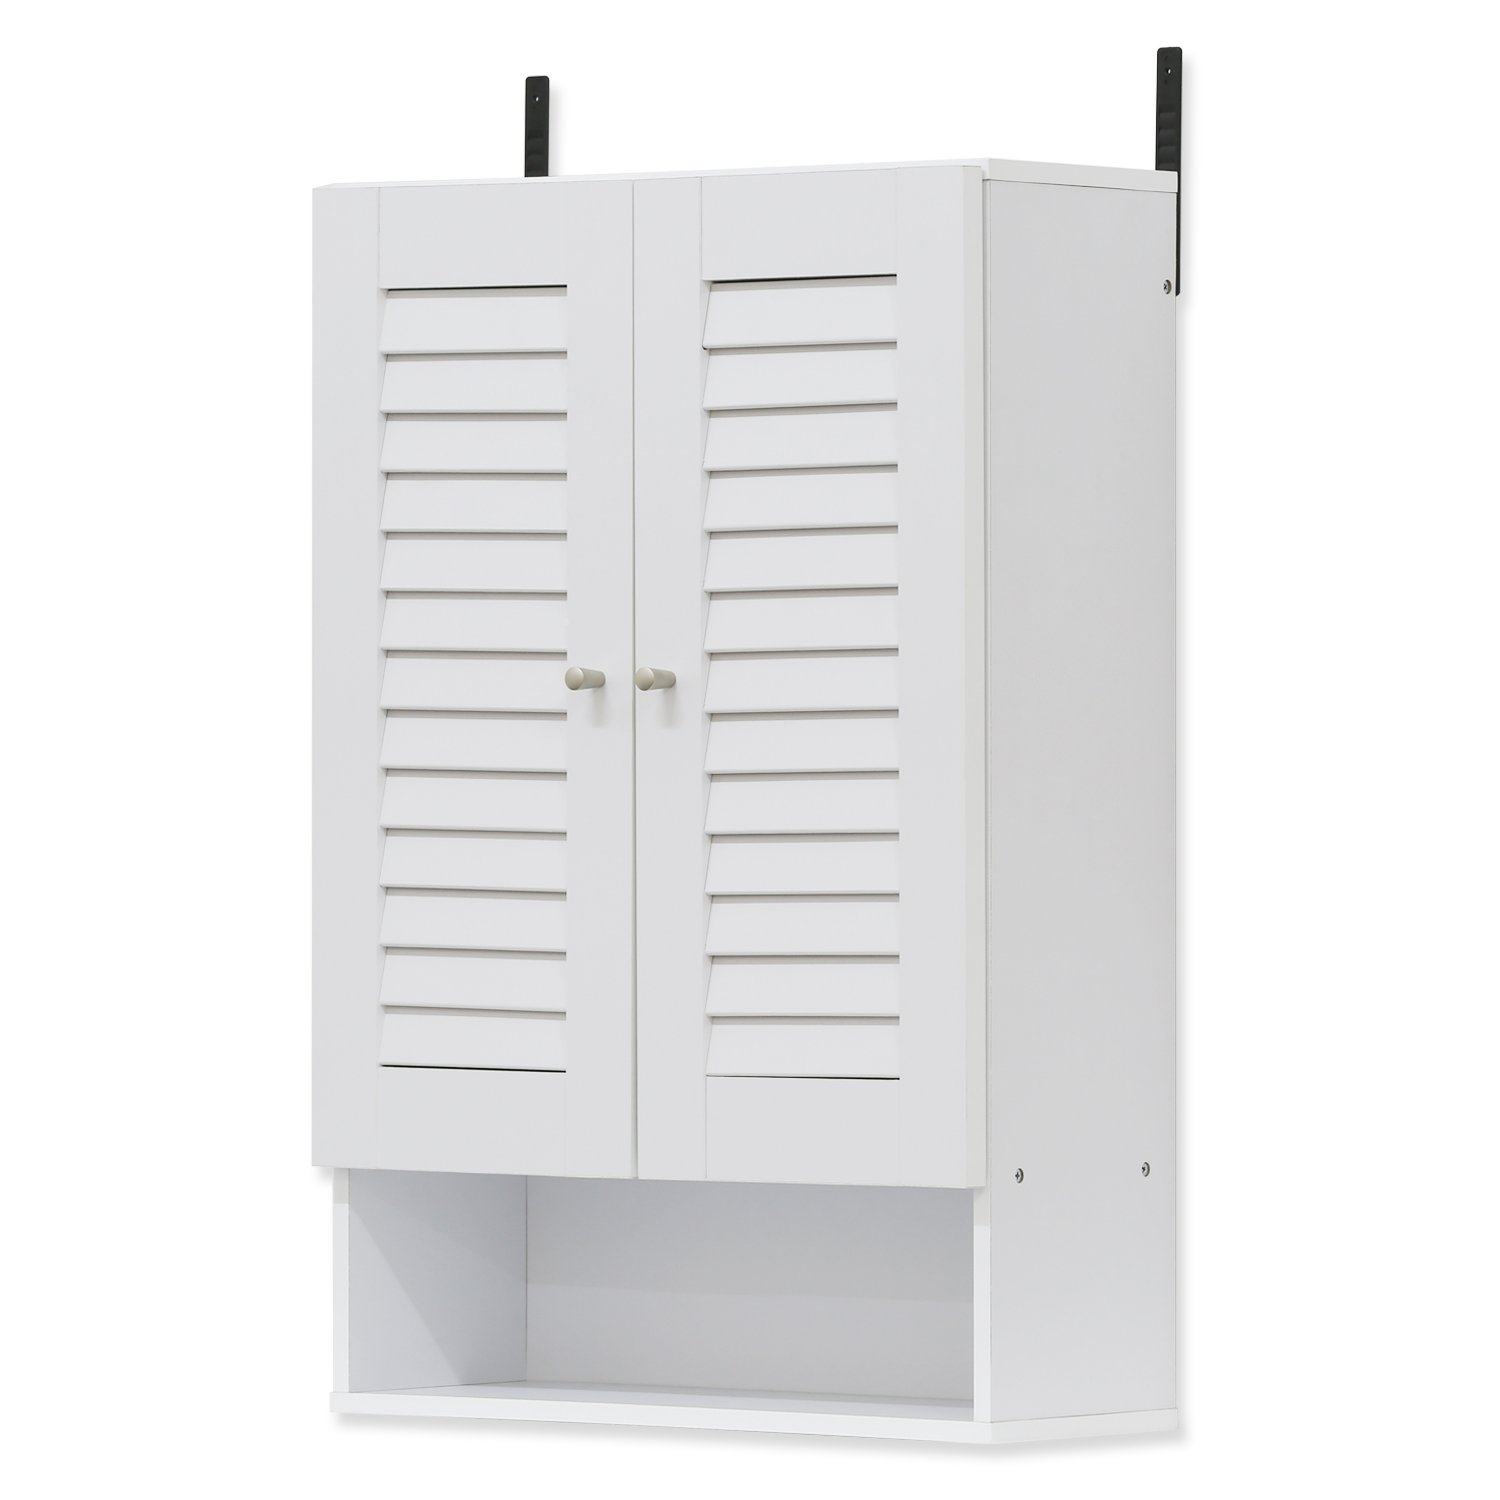 Furinno 16063WH Indo Double Door Wall Cabinet, 19.7 Inch, White